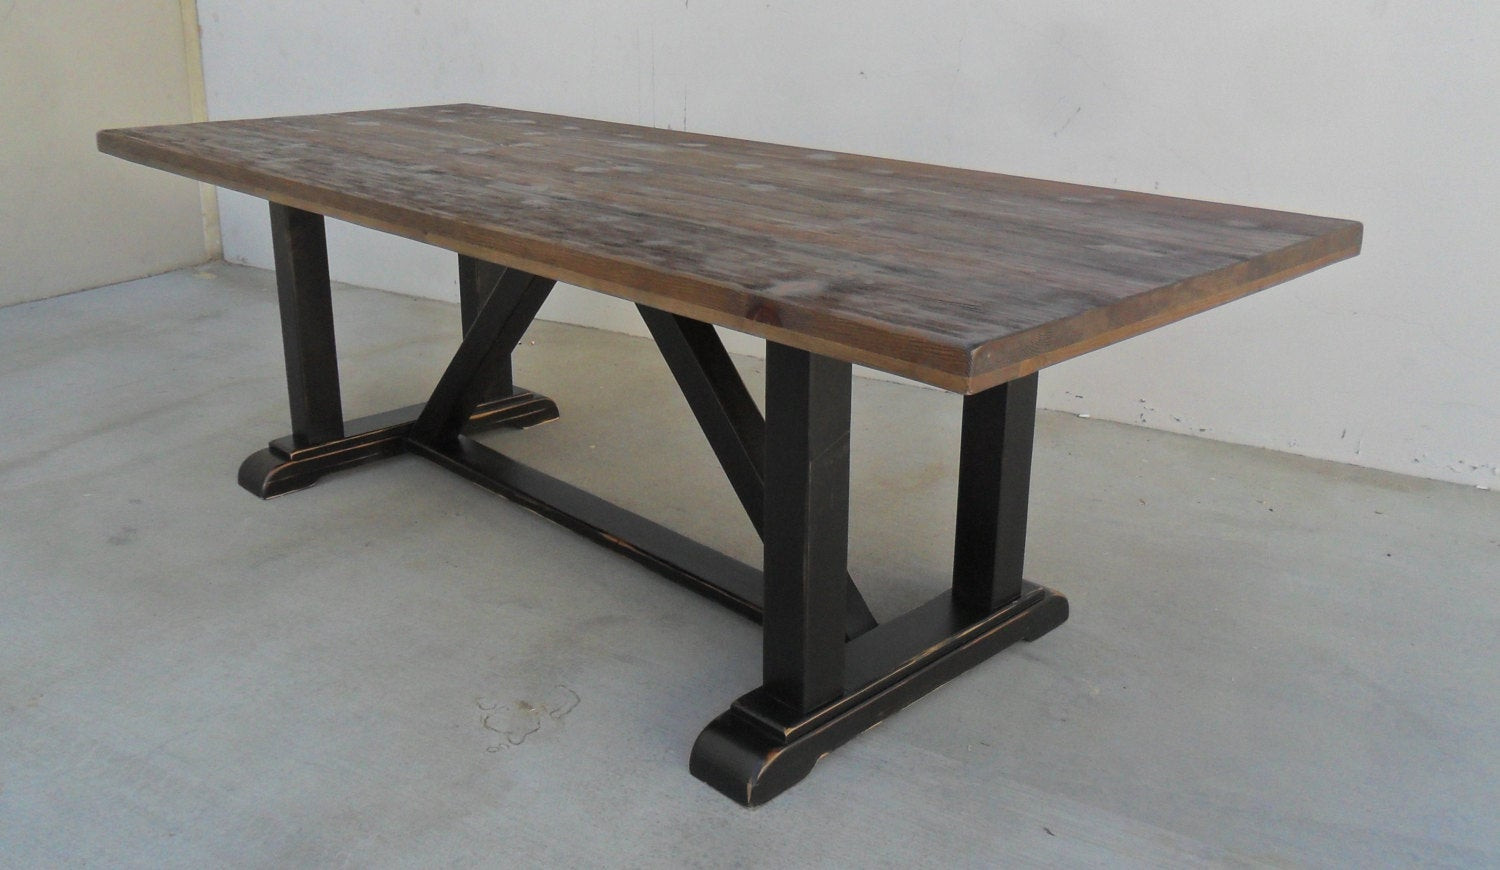 Best ideas about Trestle Dining Table . Save or Pin Dining Table Reclaimed Wood Trestle Table Rustic Now.